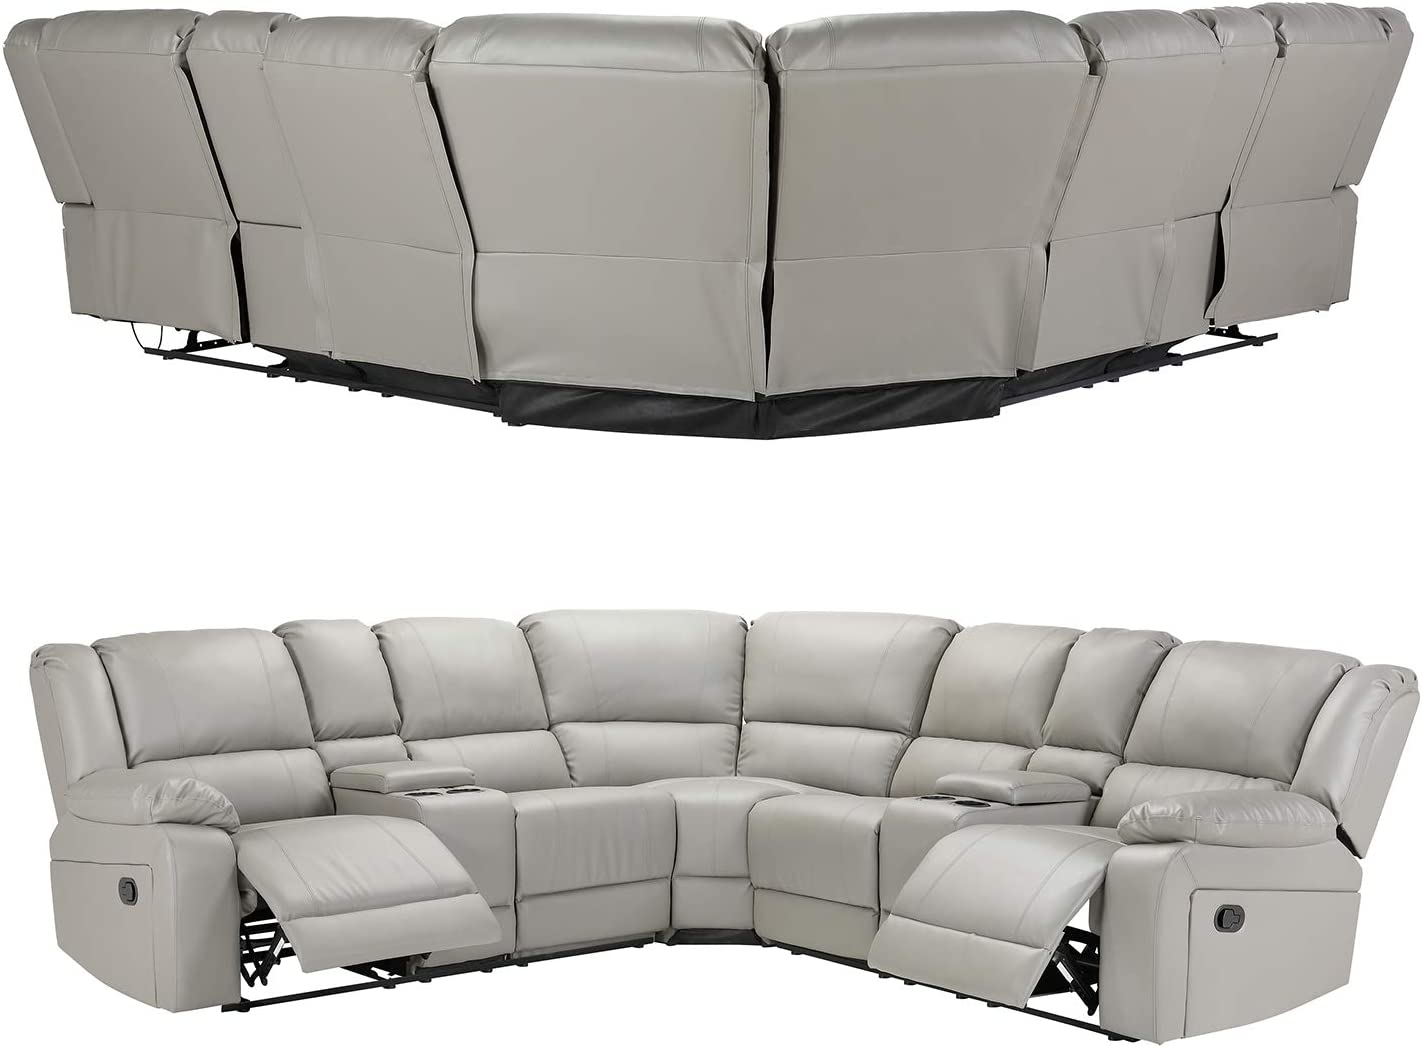 Fabric Grey Premium Foam Filling Soft Fabrics Top Manual Reclining Sectional Sofa w//Cup Holder and Coffee Holder Console Living Room Sofa Set